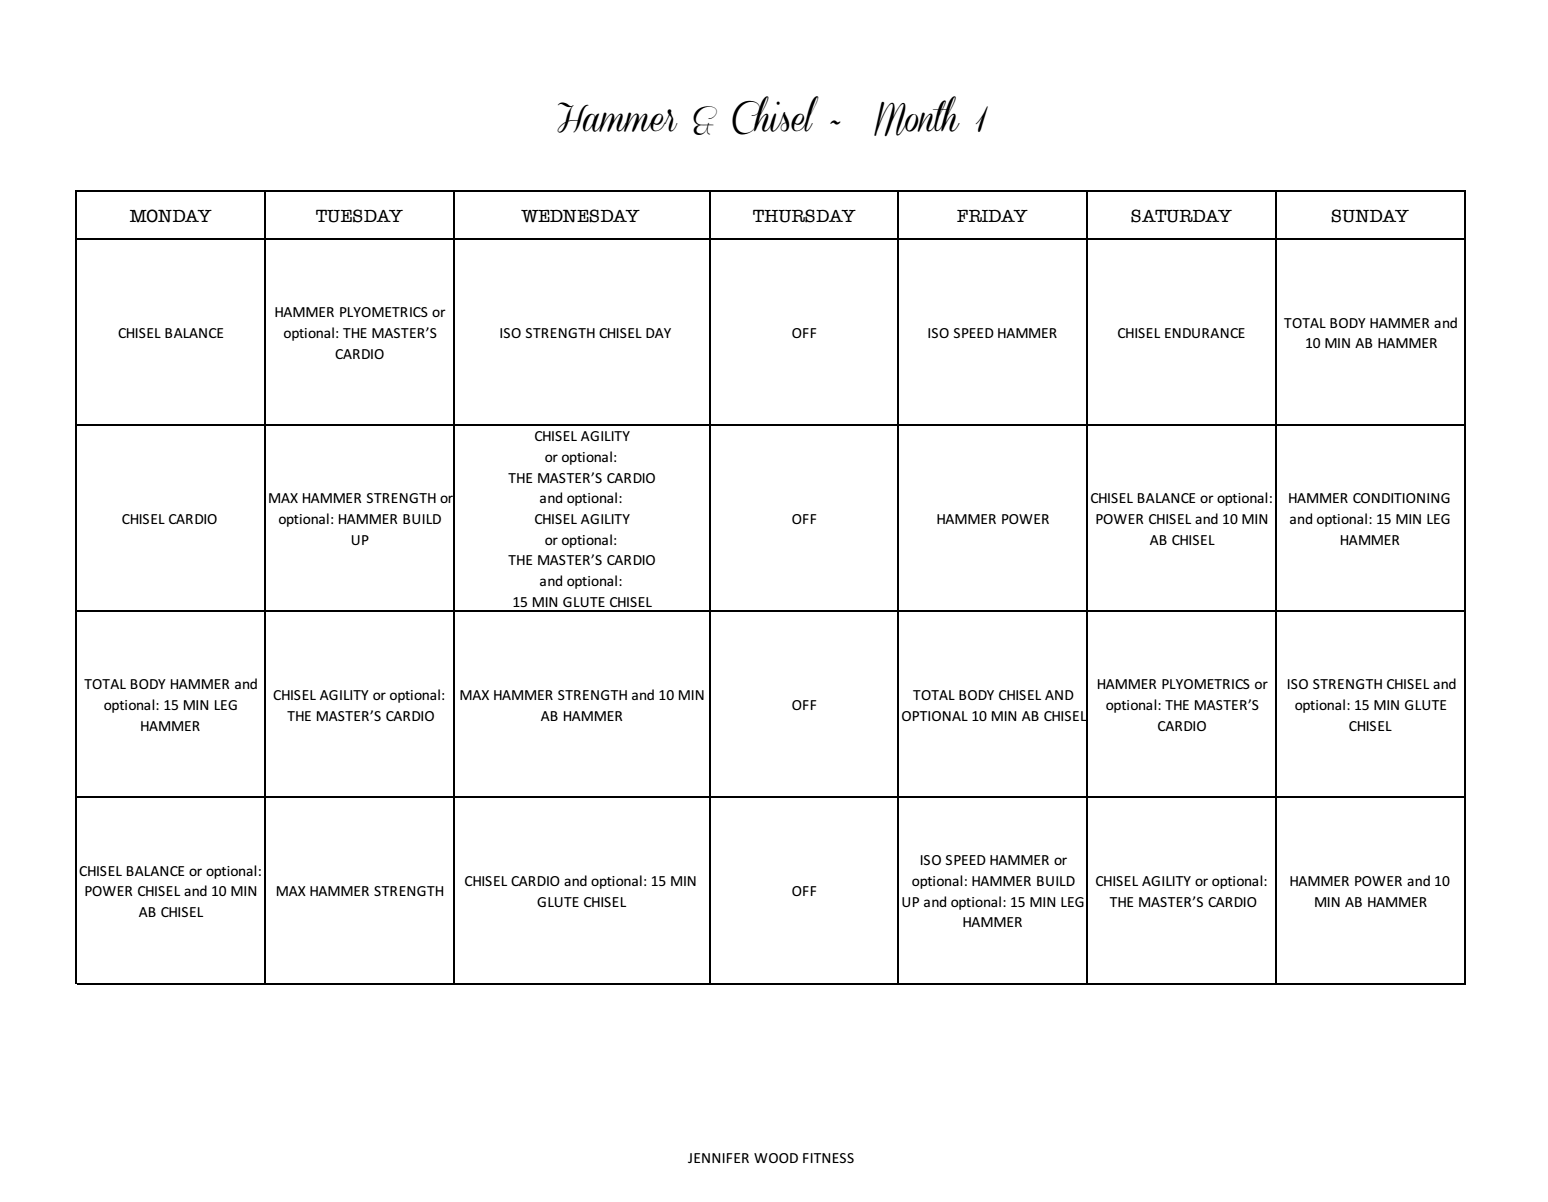 photograph regarding T25 Schedule Printable referred to as Jennifer Picket Health : Hammer and Chisel Training Printable